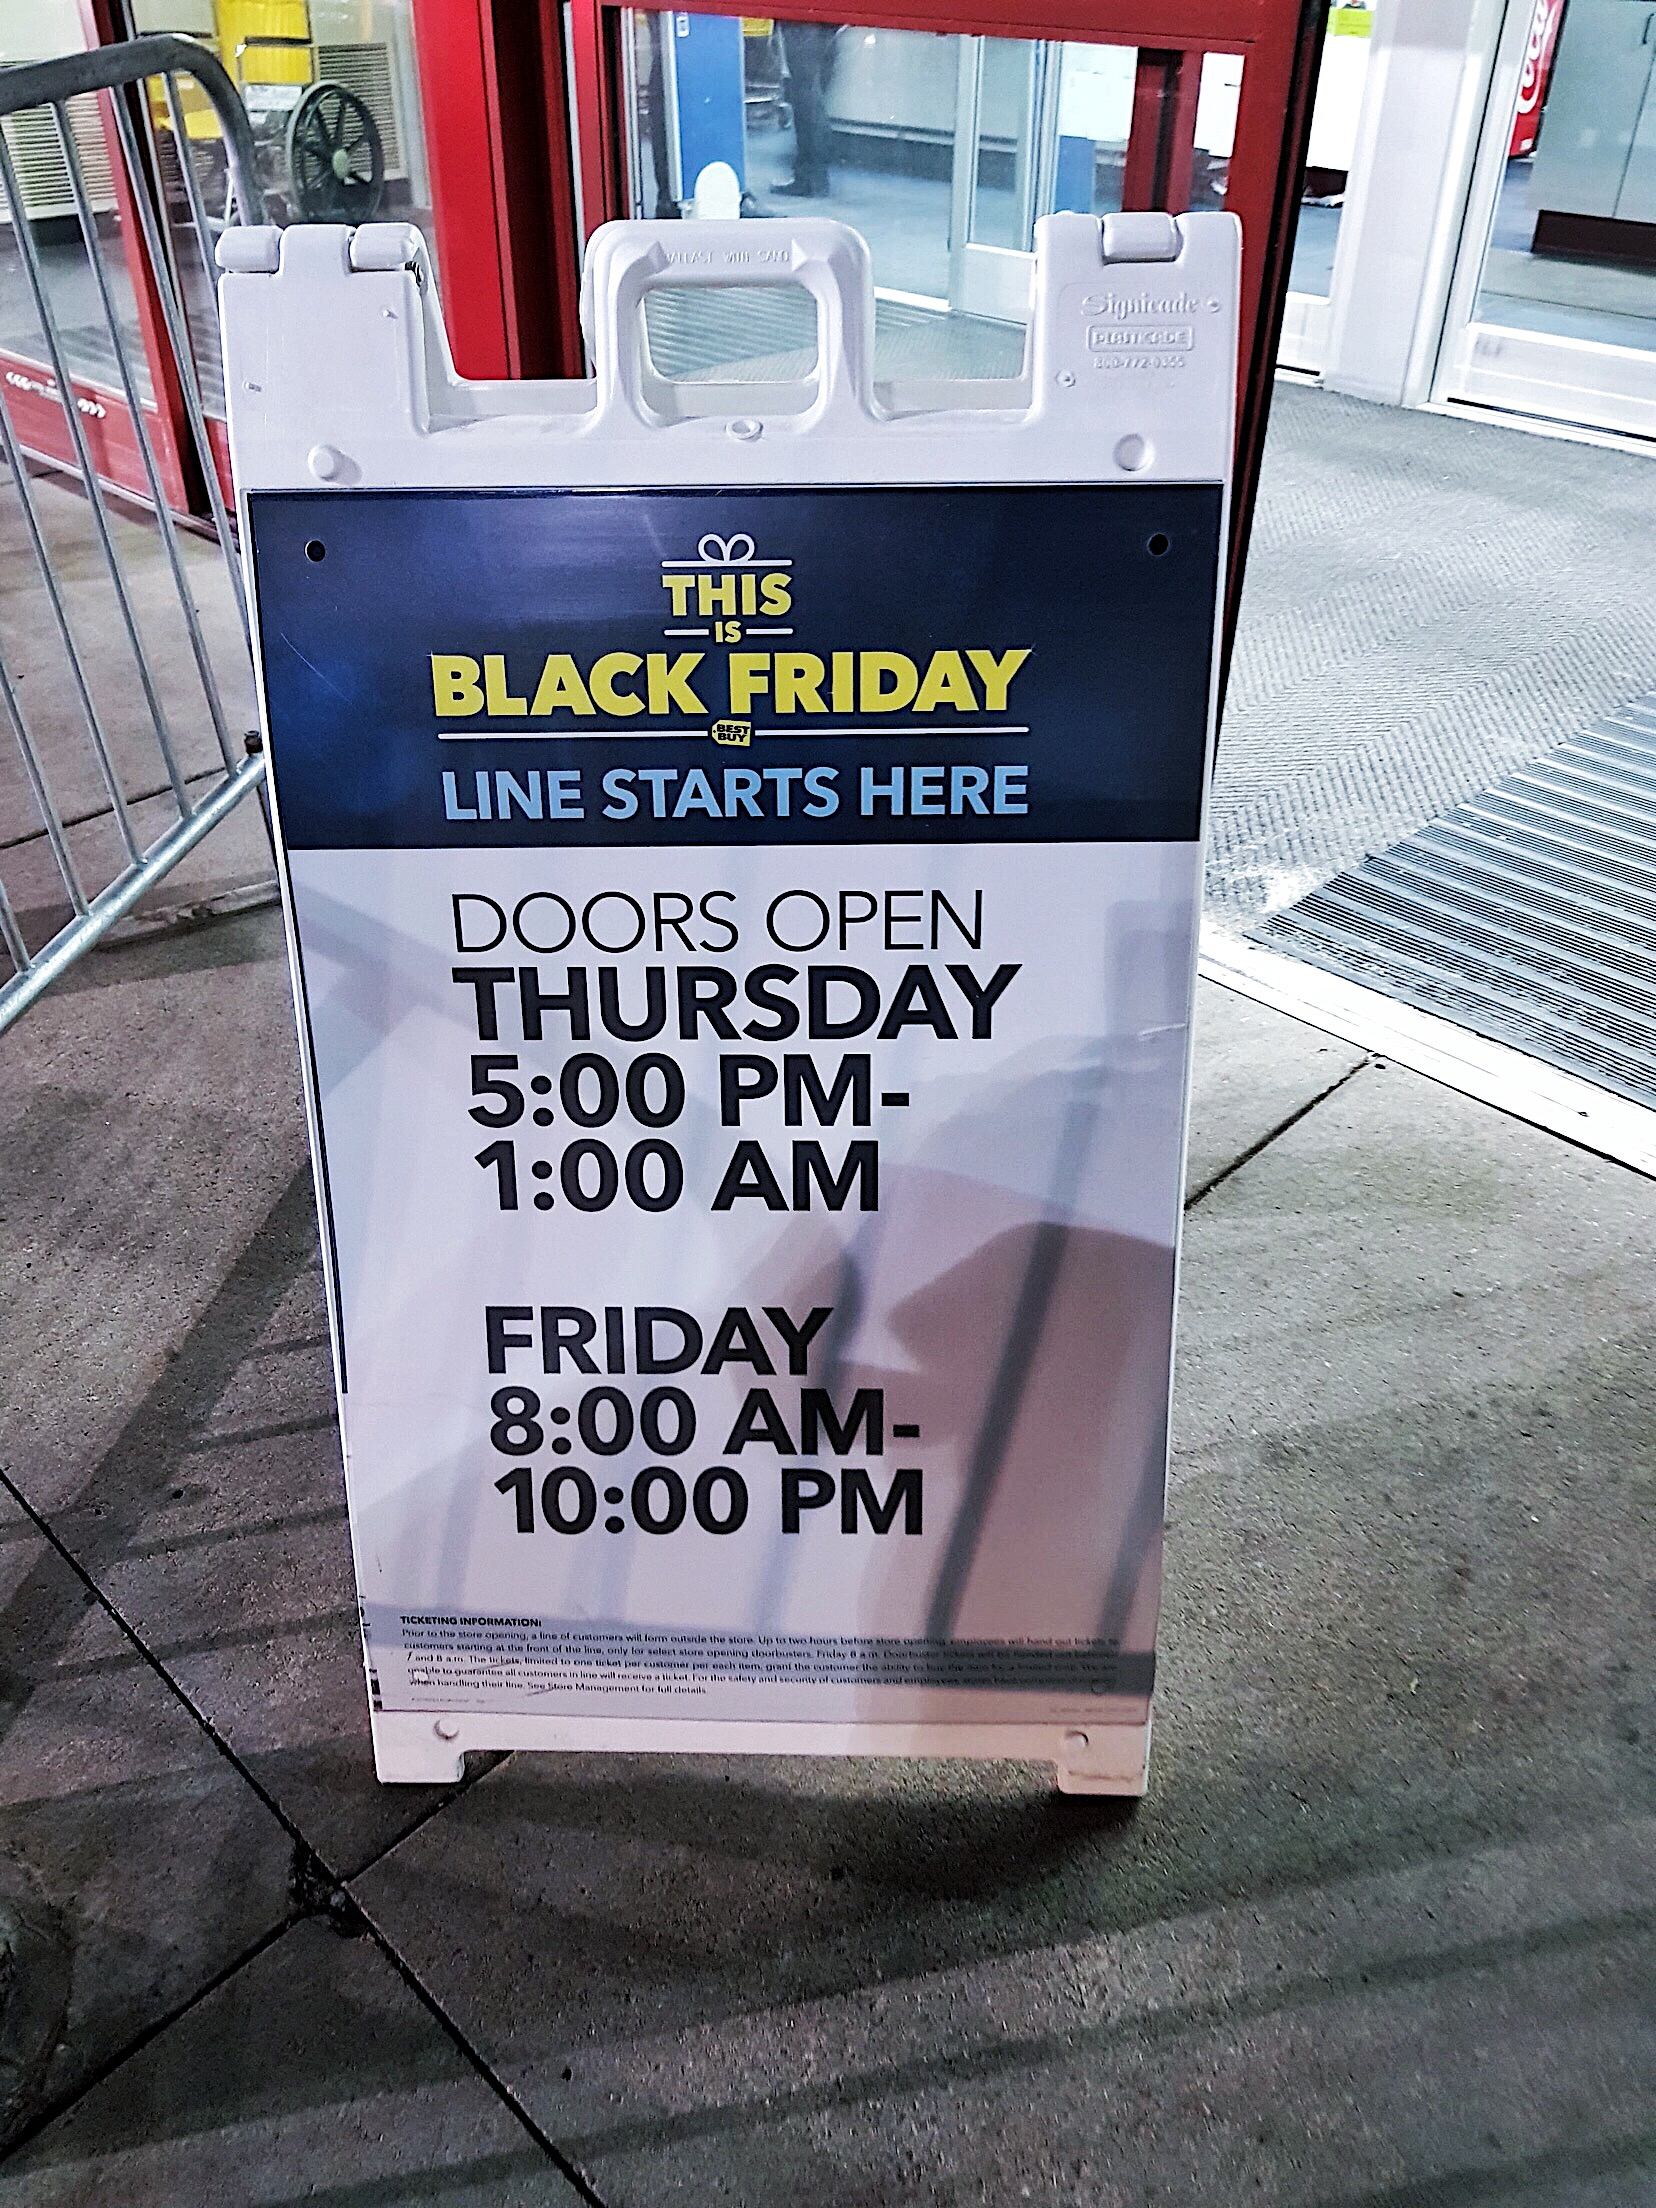 Best Buy Black Friday 2017 - Wausau, Wisconsin